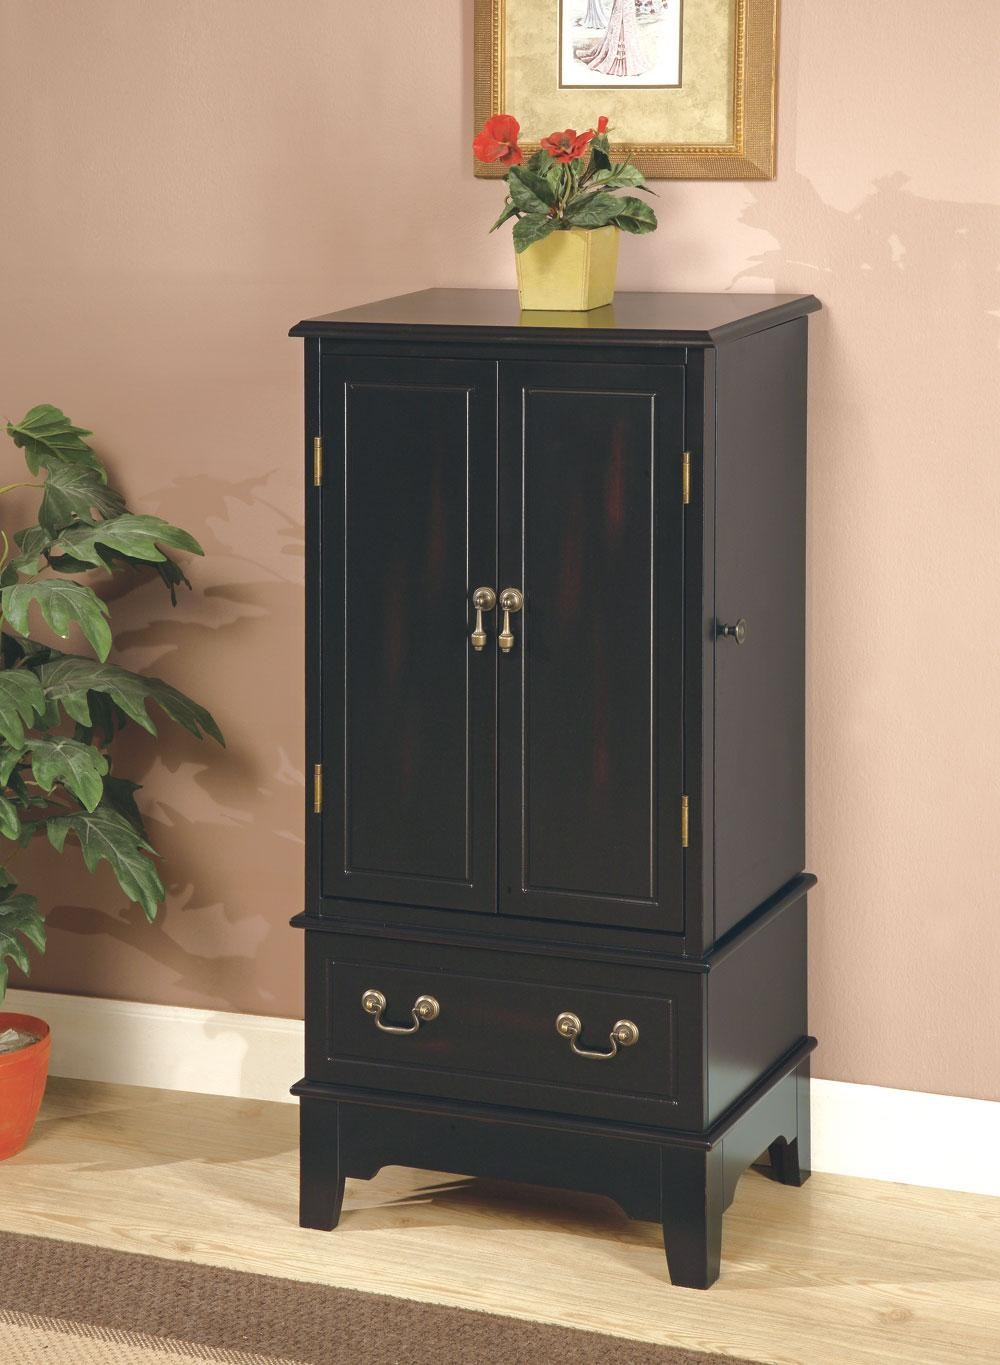 Black Jewelry Armoire 900095 From Coaster 900095